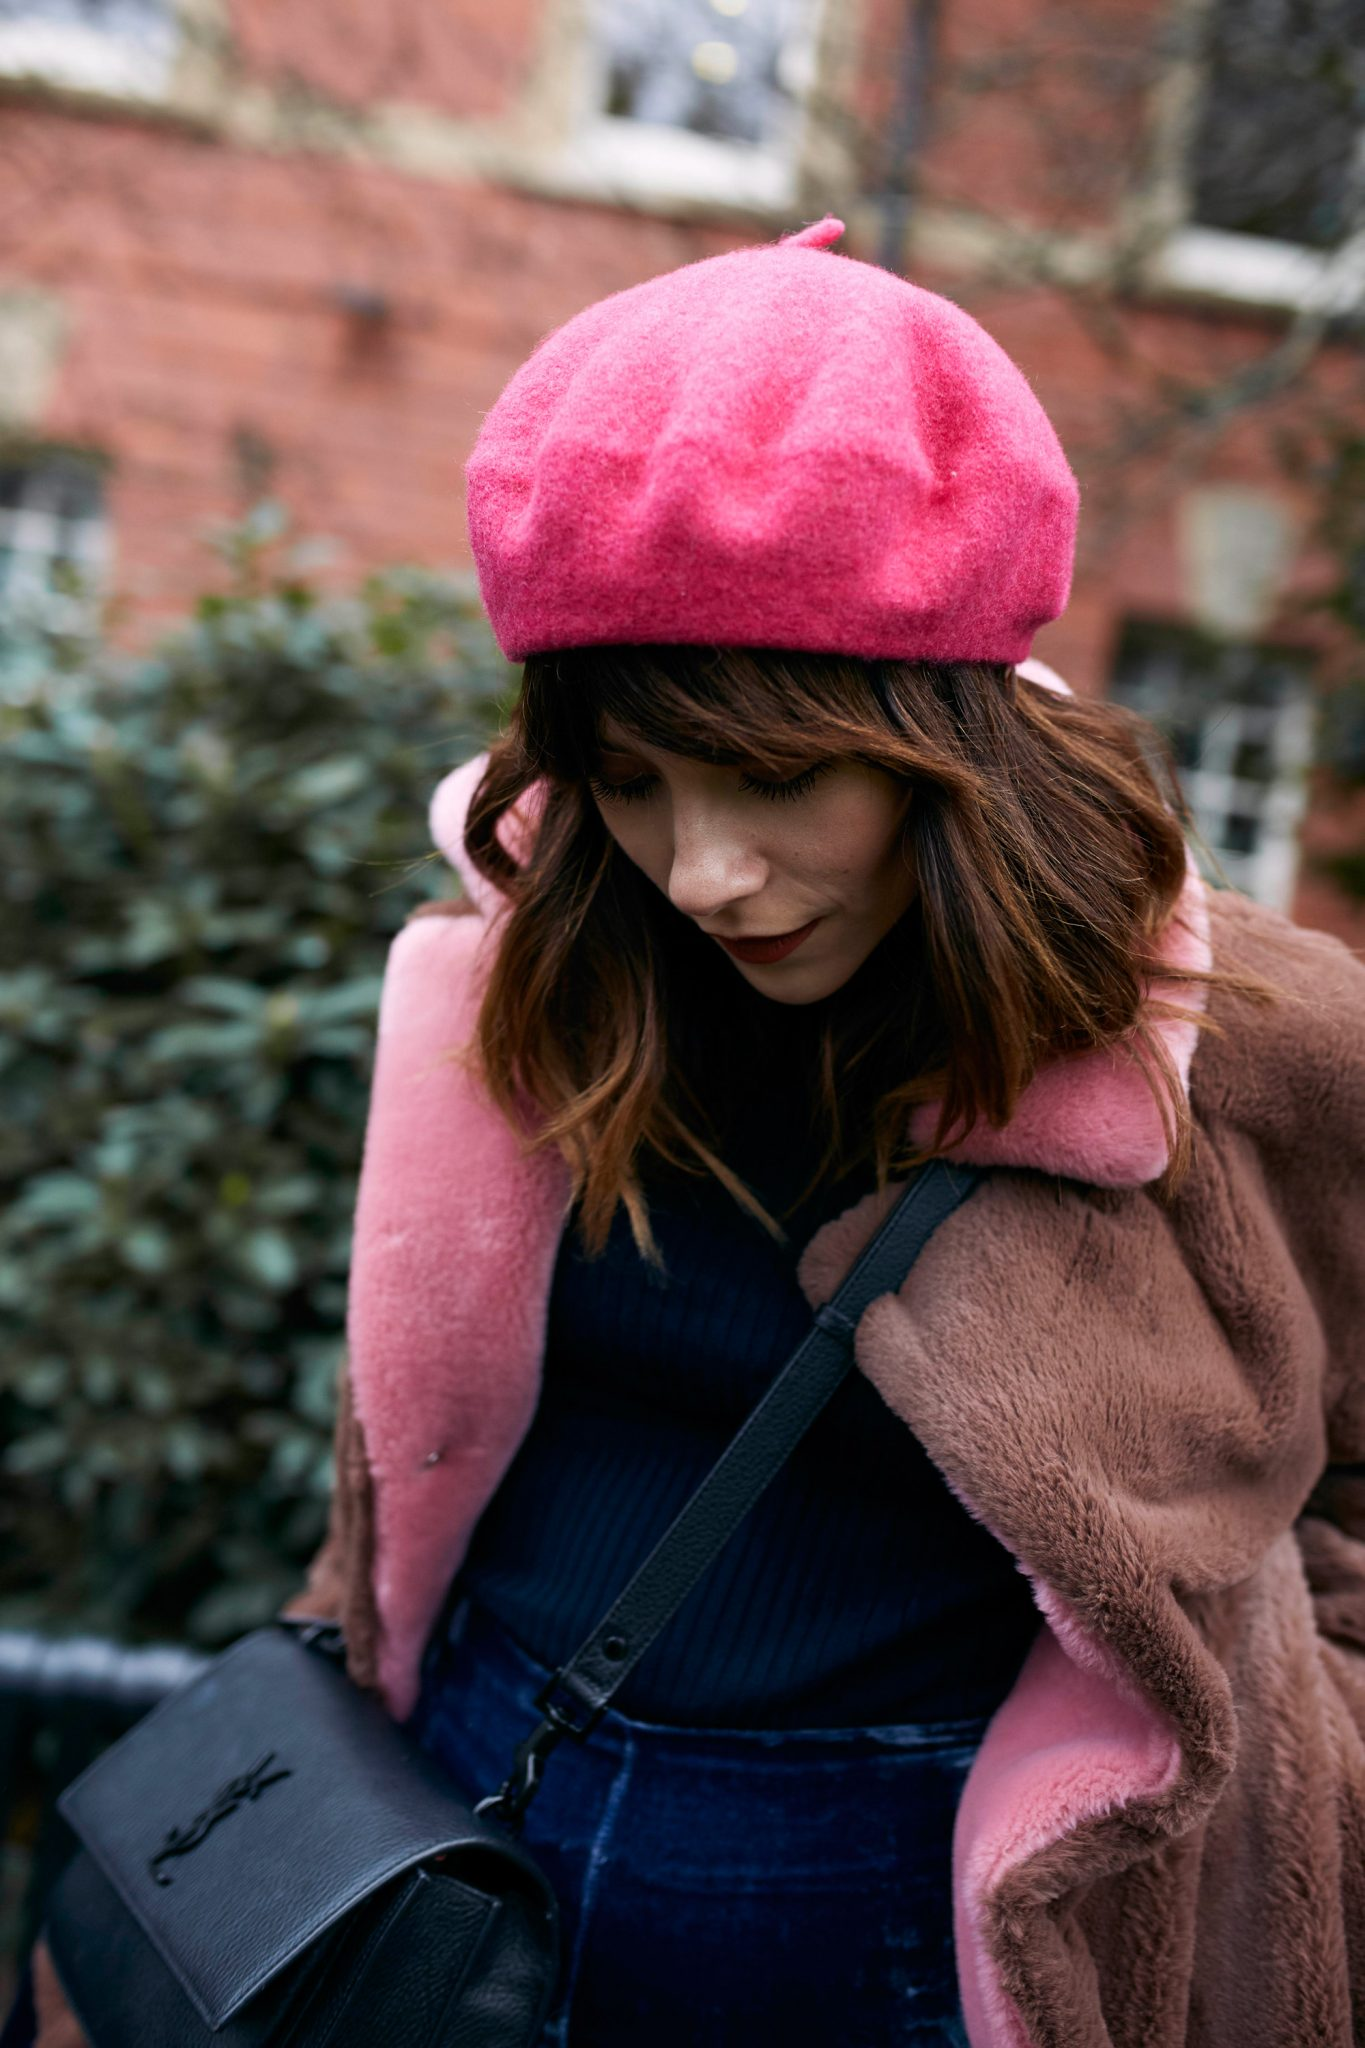 HOW TO WEAR A BERET WITH A FRINGE